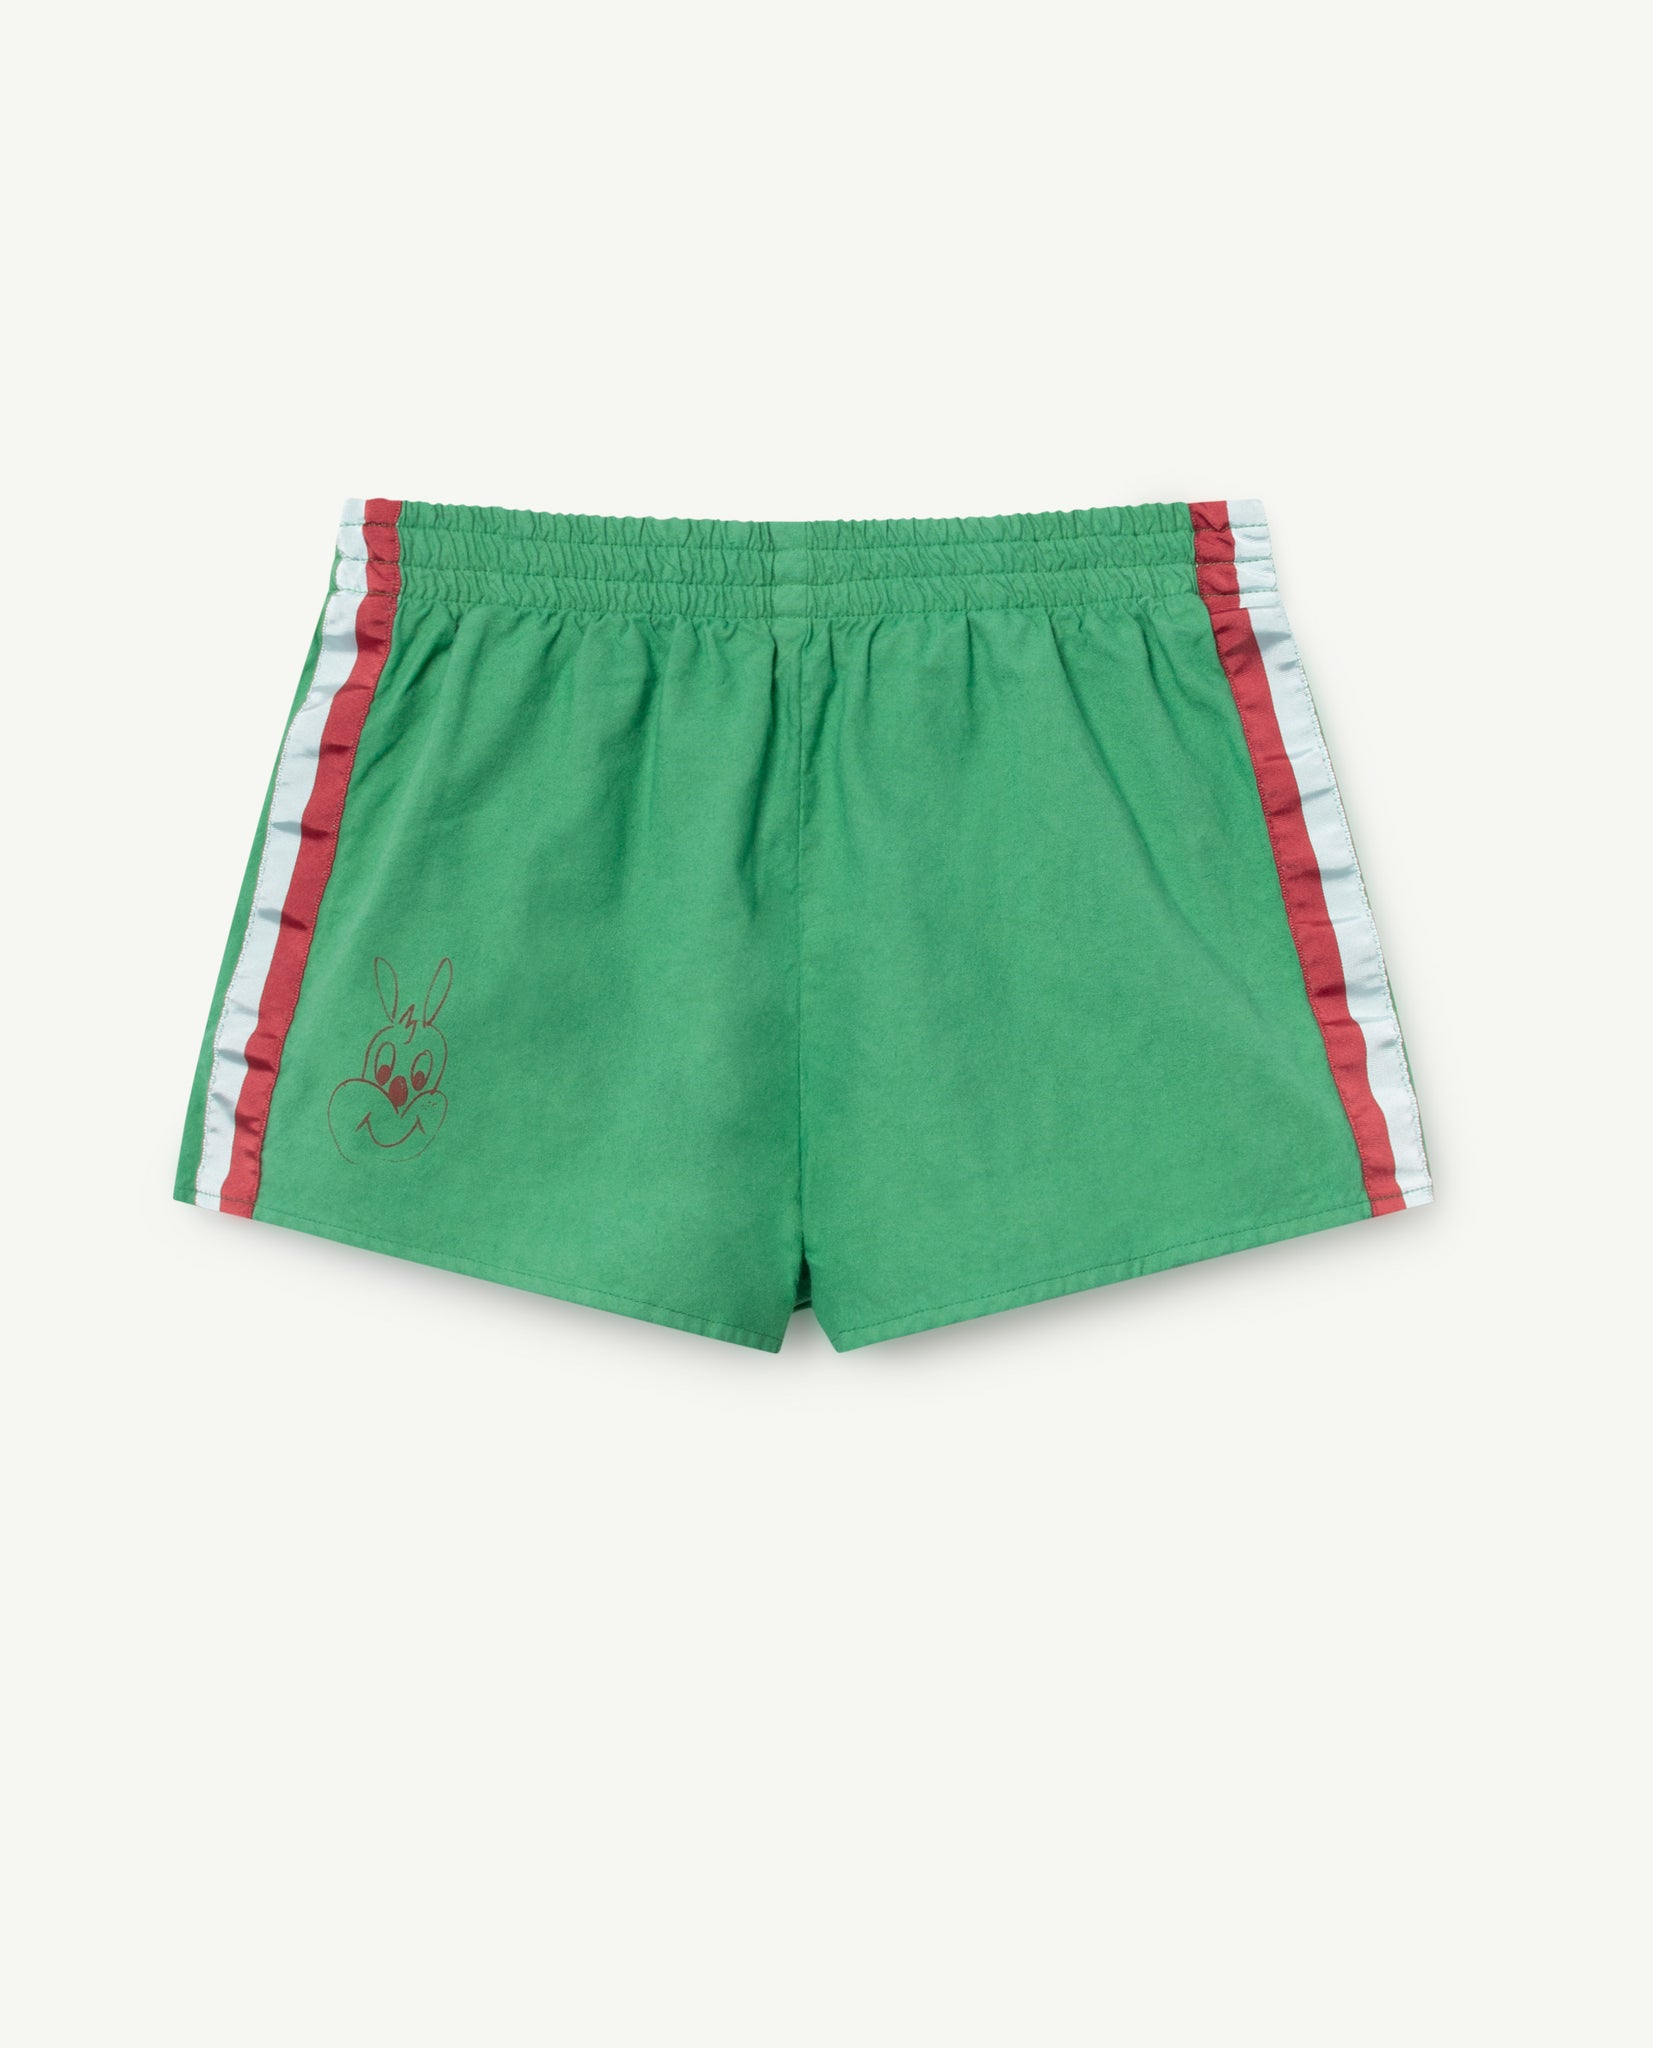 SPIDER KIDS SHORTS // GREEN RABBIT